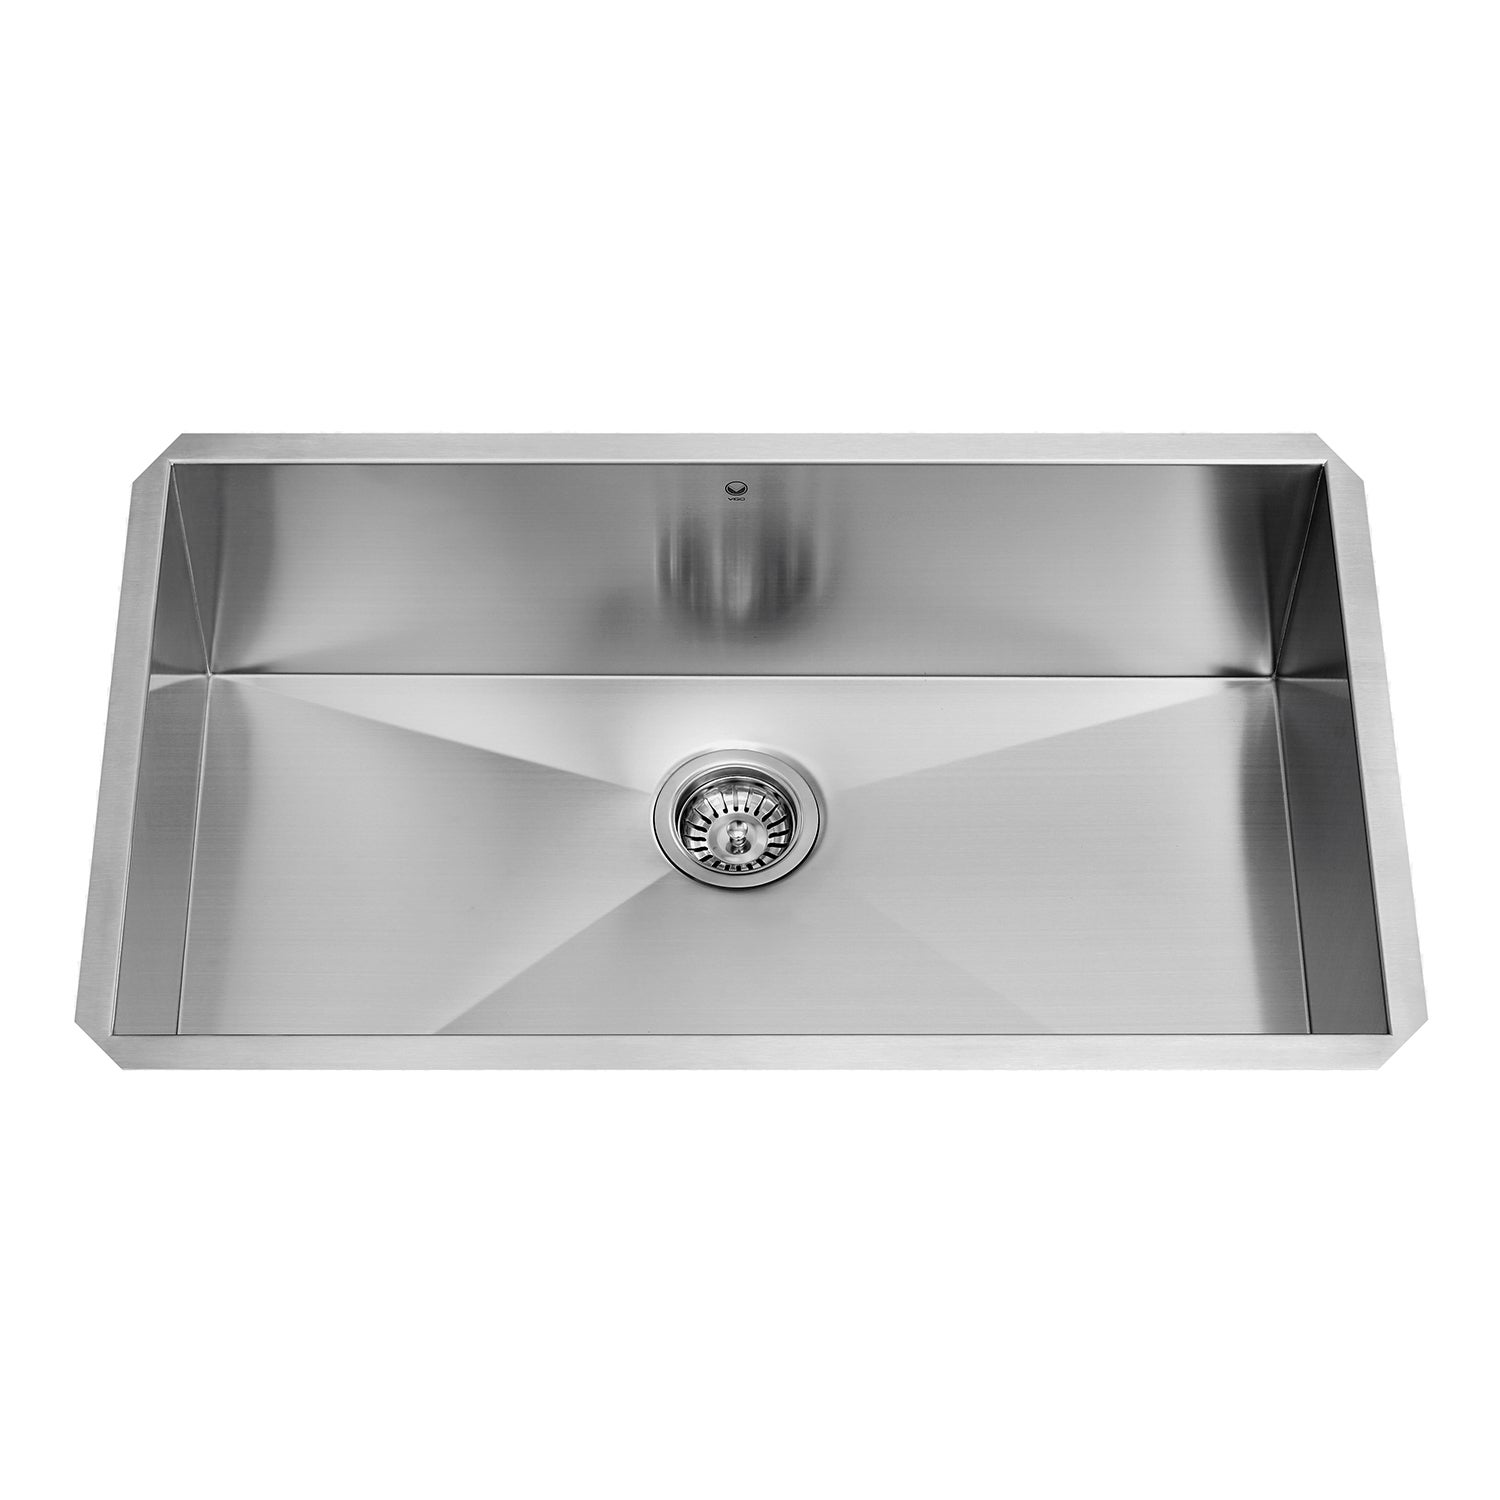 Metal Kitchen Sinks Vigo 32 inch undermount stainless steel single bowl kitchen sink vigo 32 inch undermount stainless steel single bowl kitchen sink with soundabsorb technology free shipping today overstock 10760387 workwithnaturefo